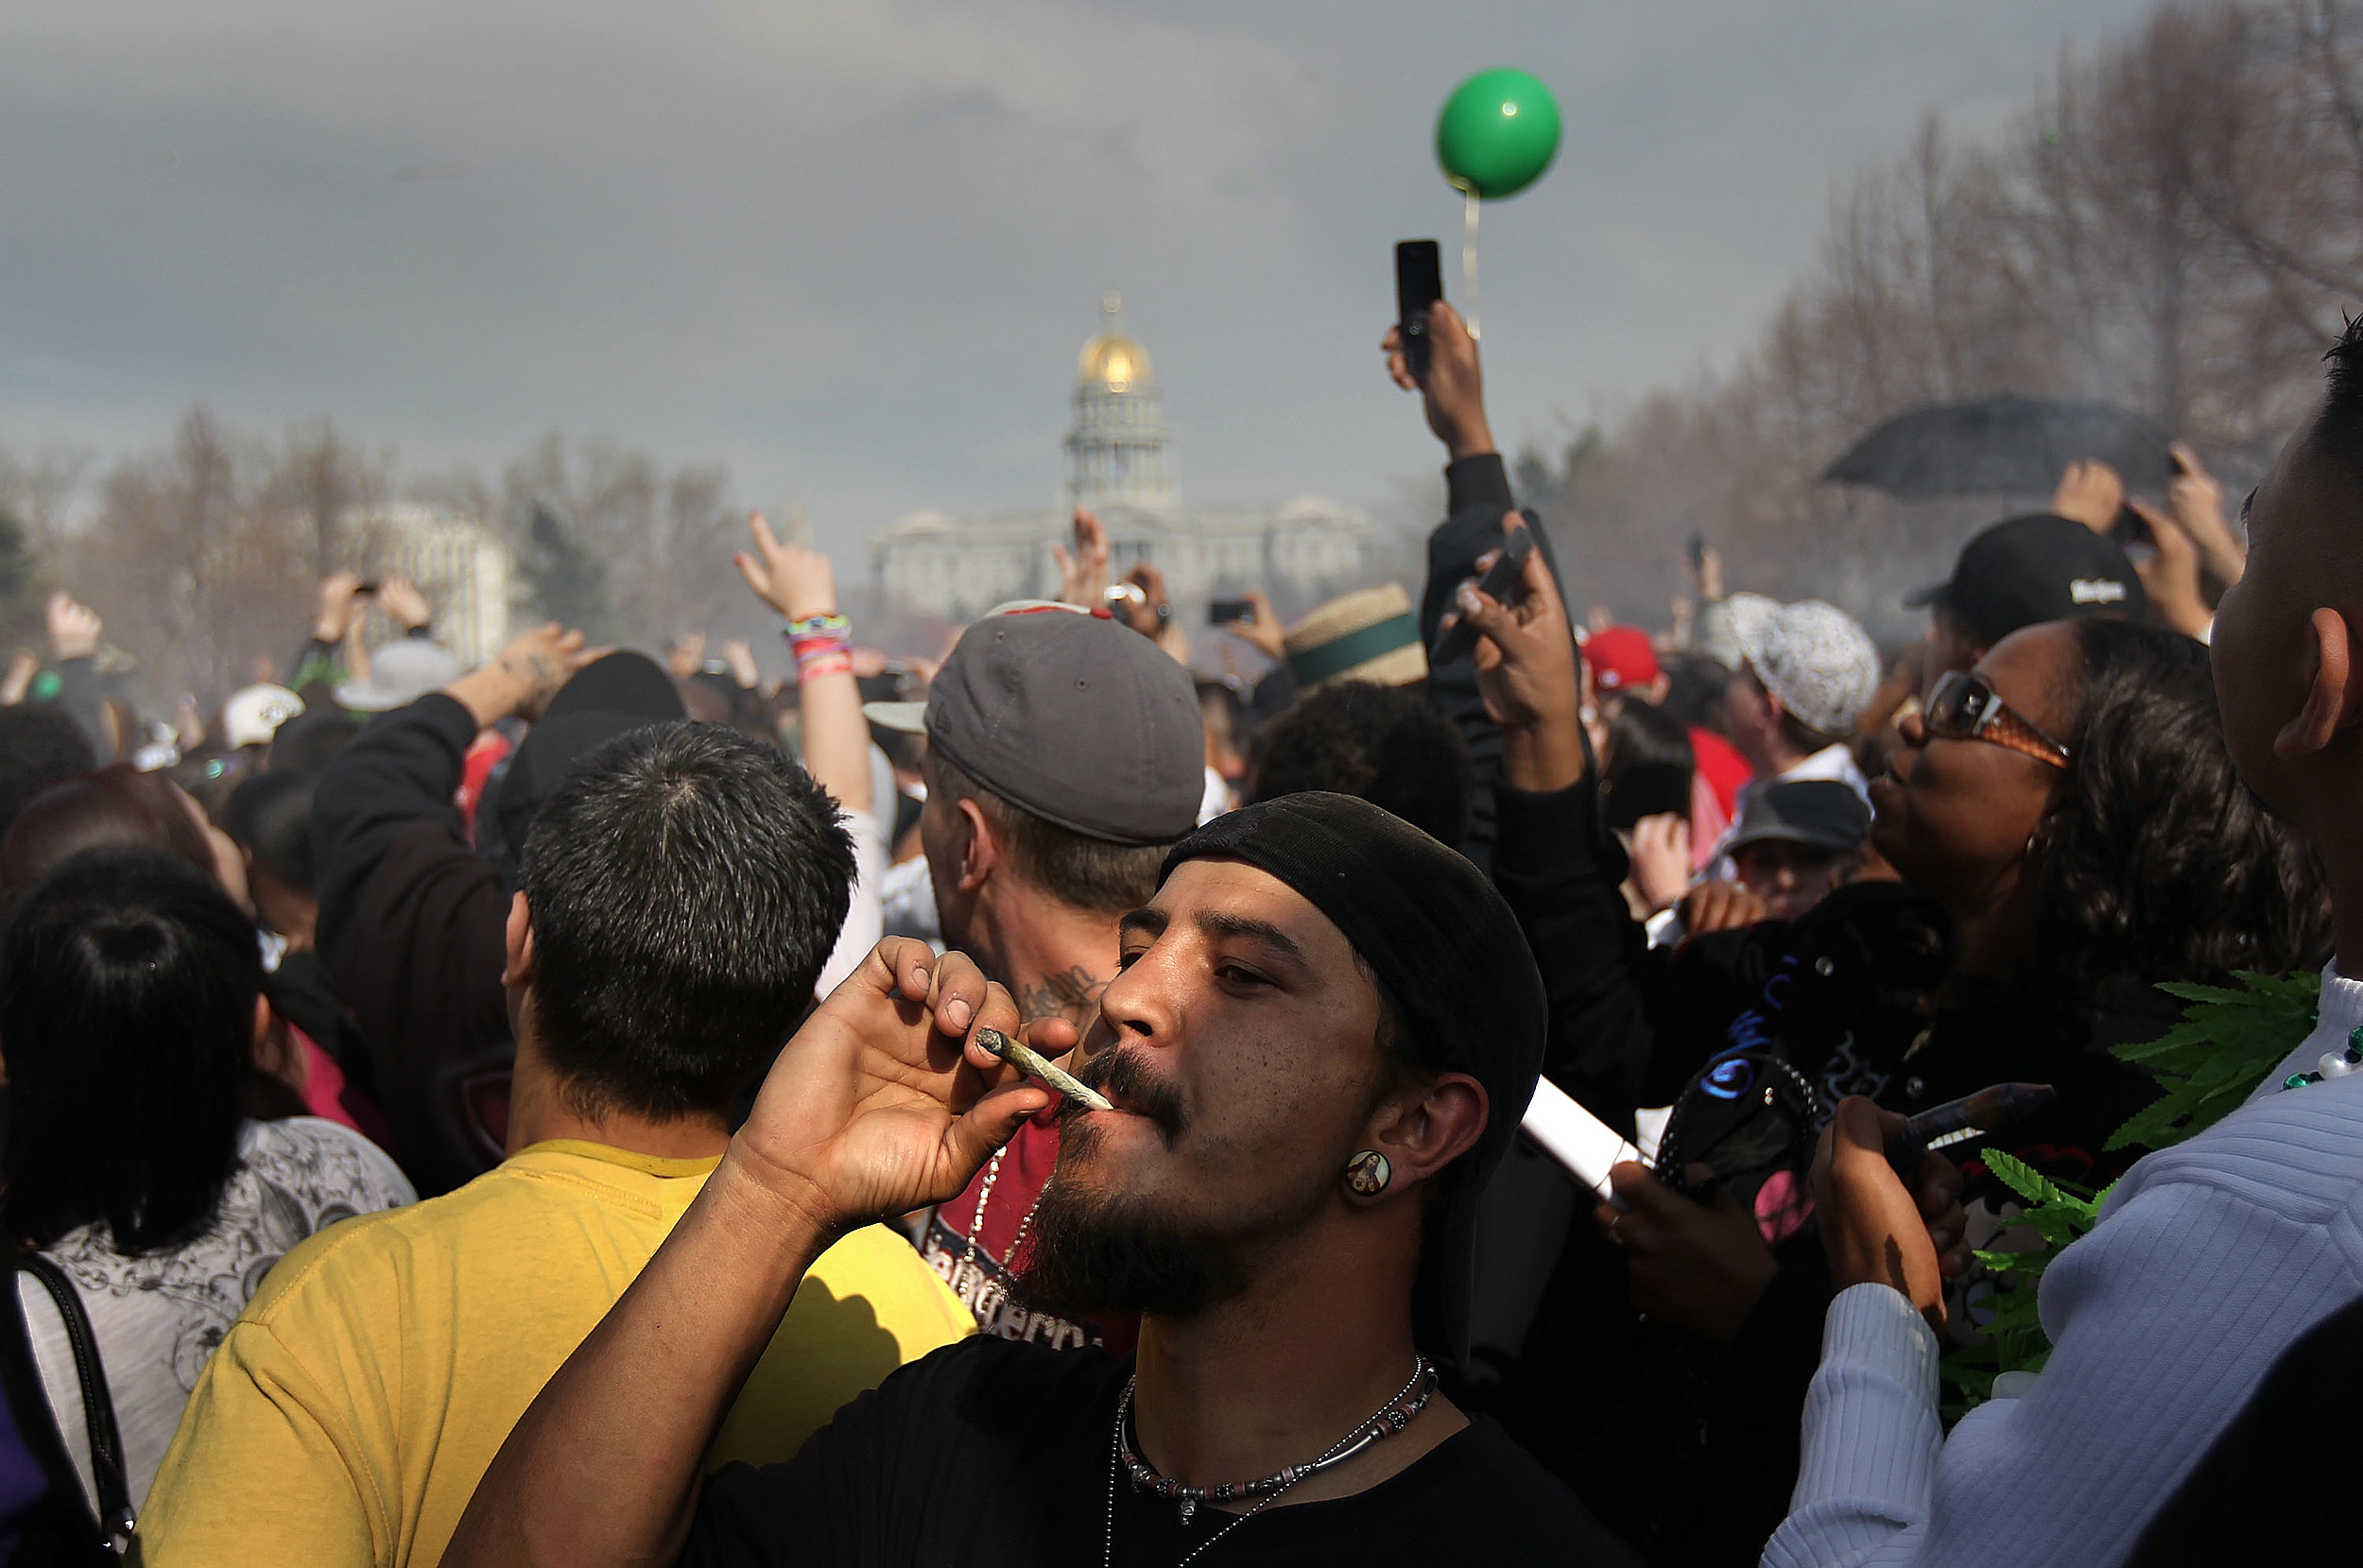 Denver marijuana celebration